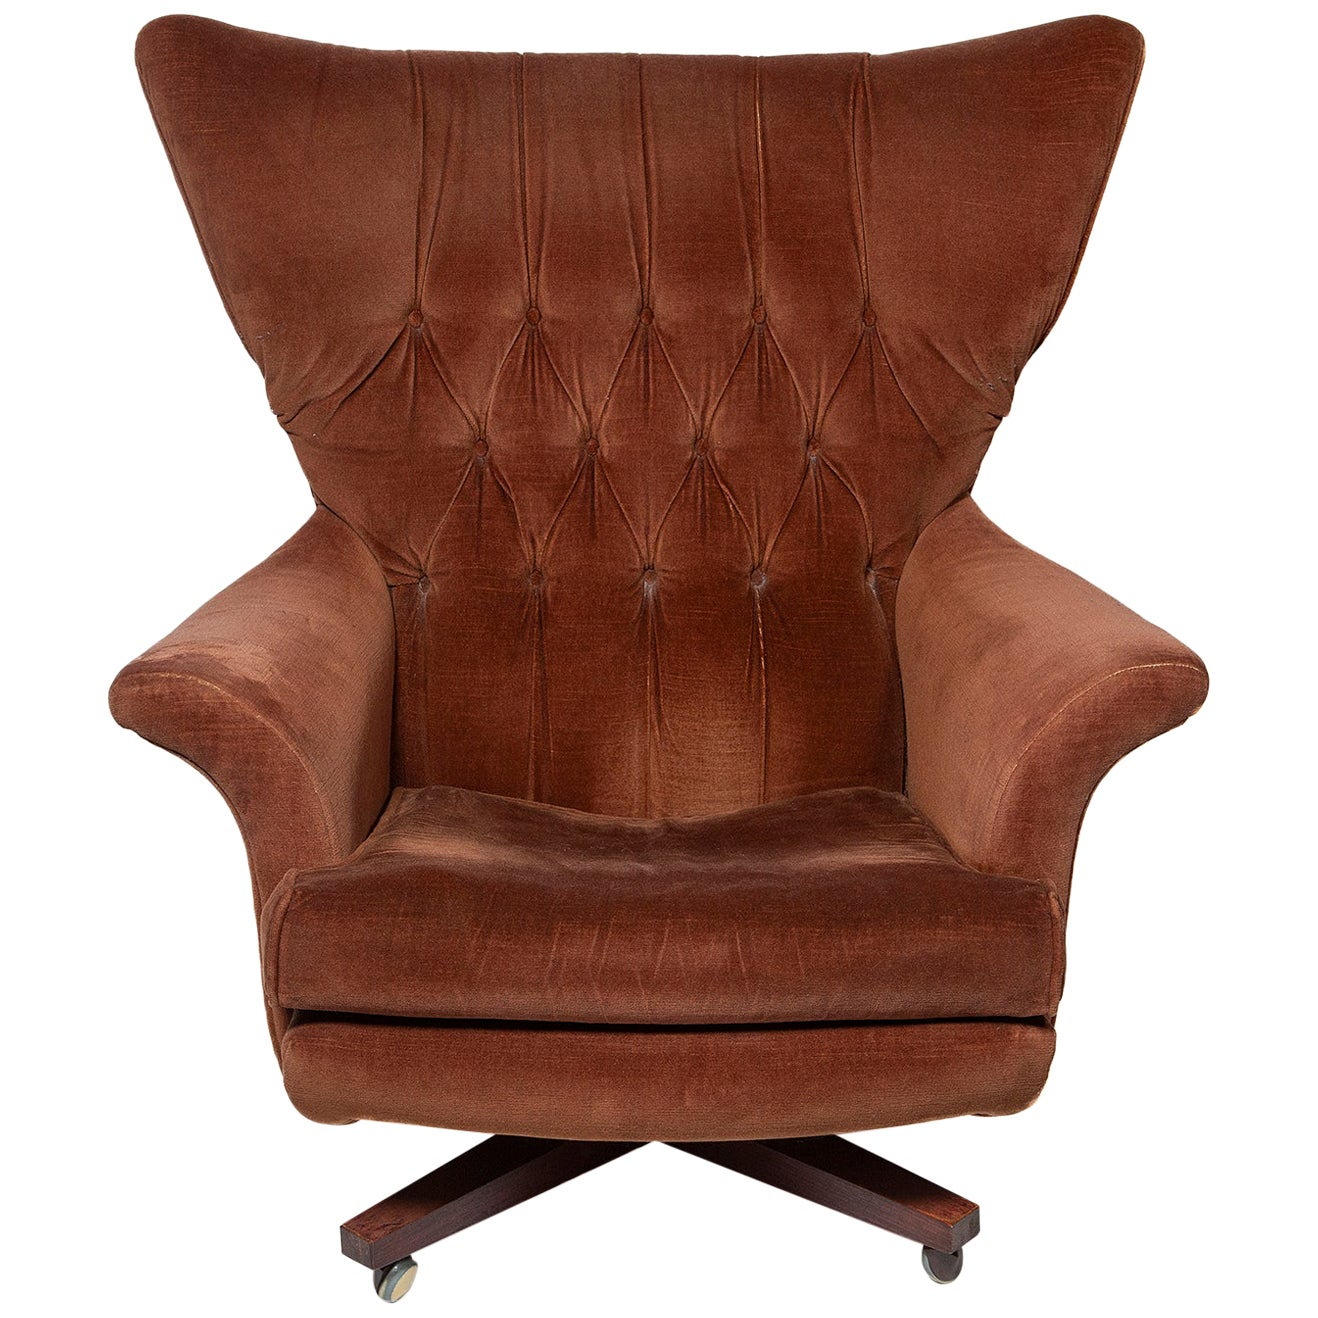 Armchair Wing Swivel Lounge G-Plan 6250R Brown Draylon 1962 James Bond Blofeld